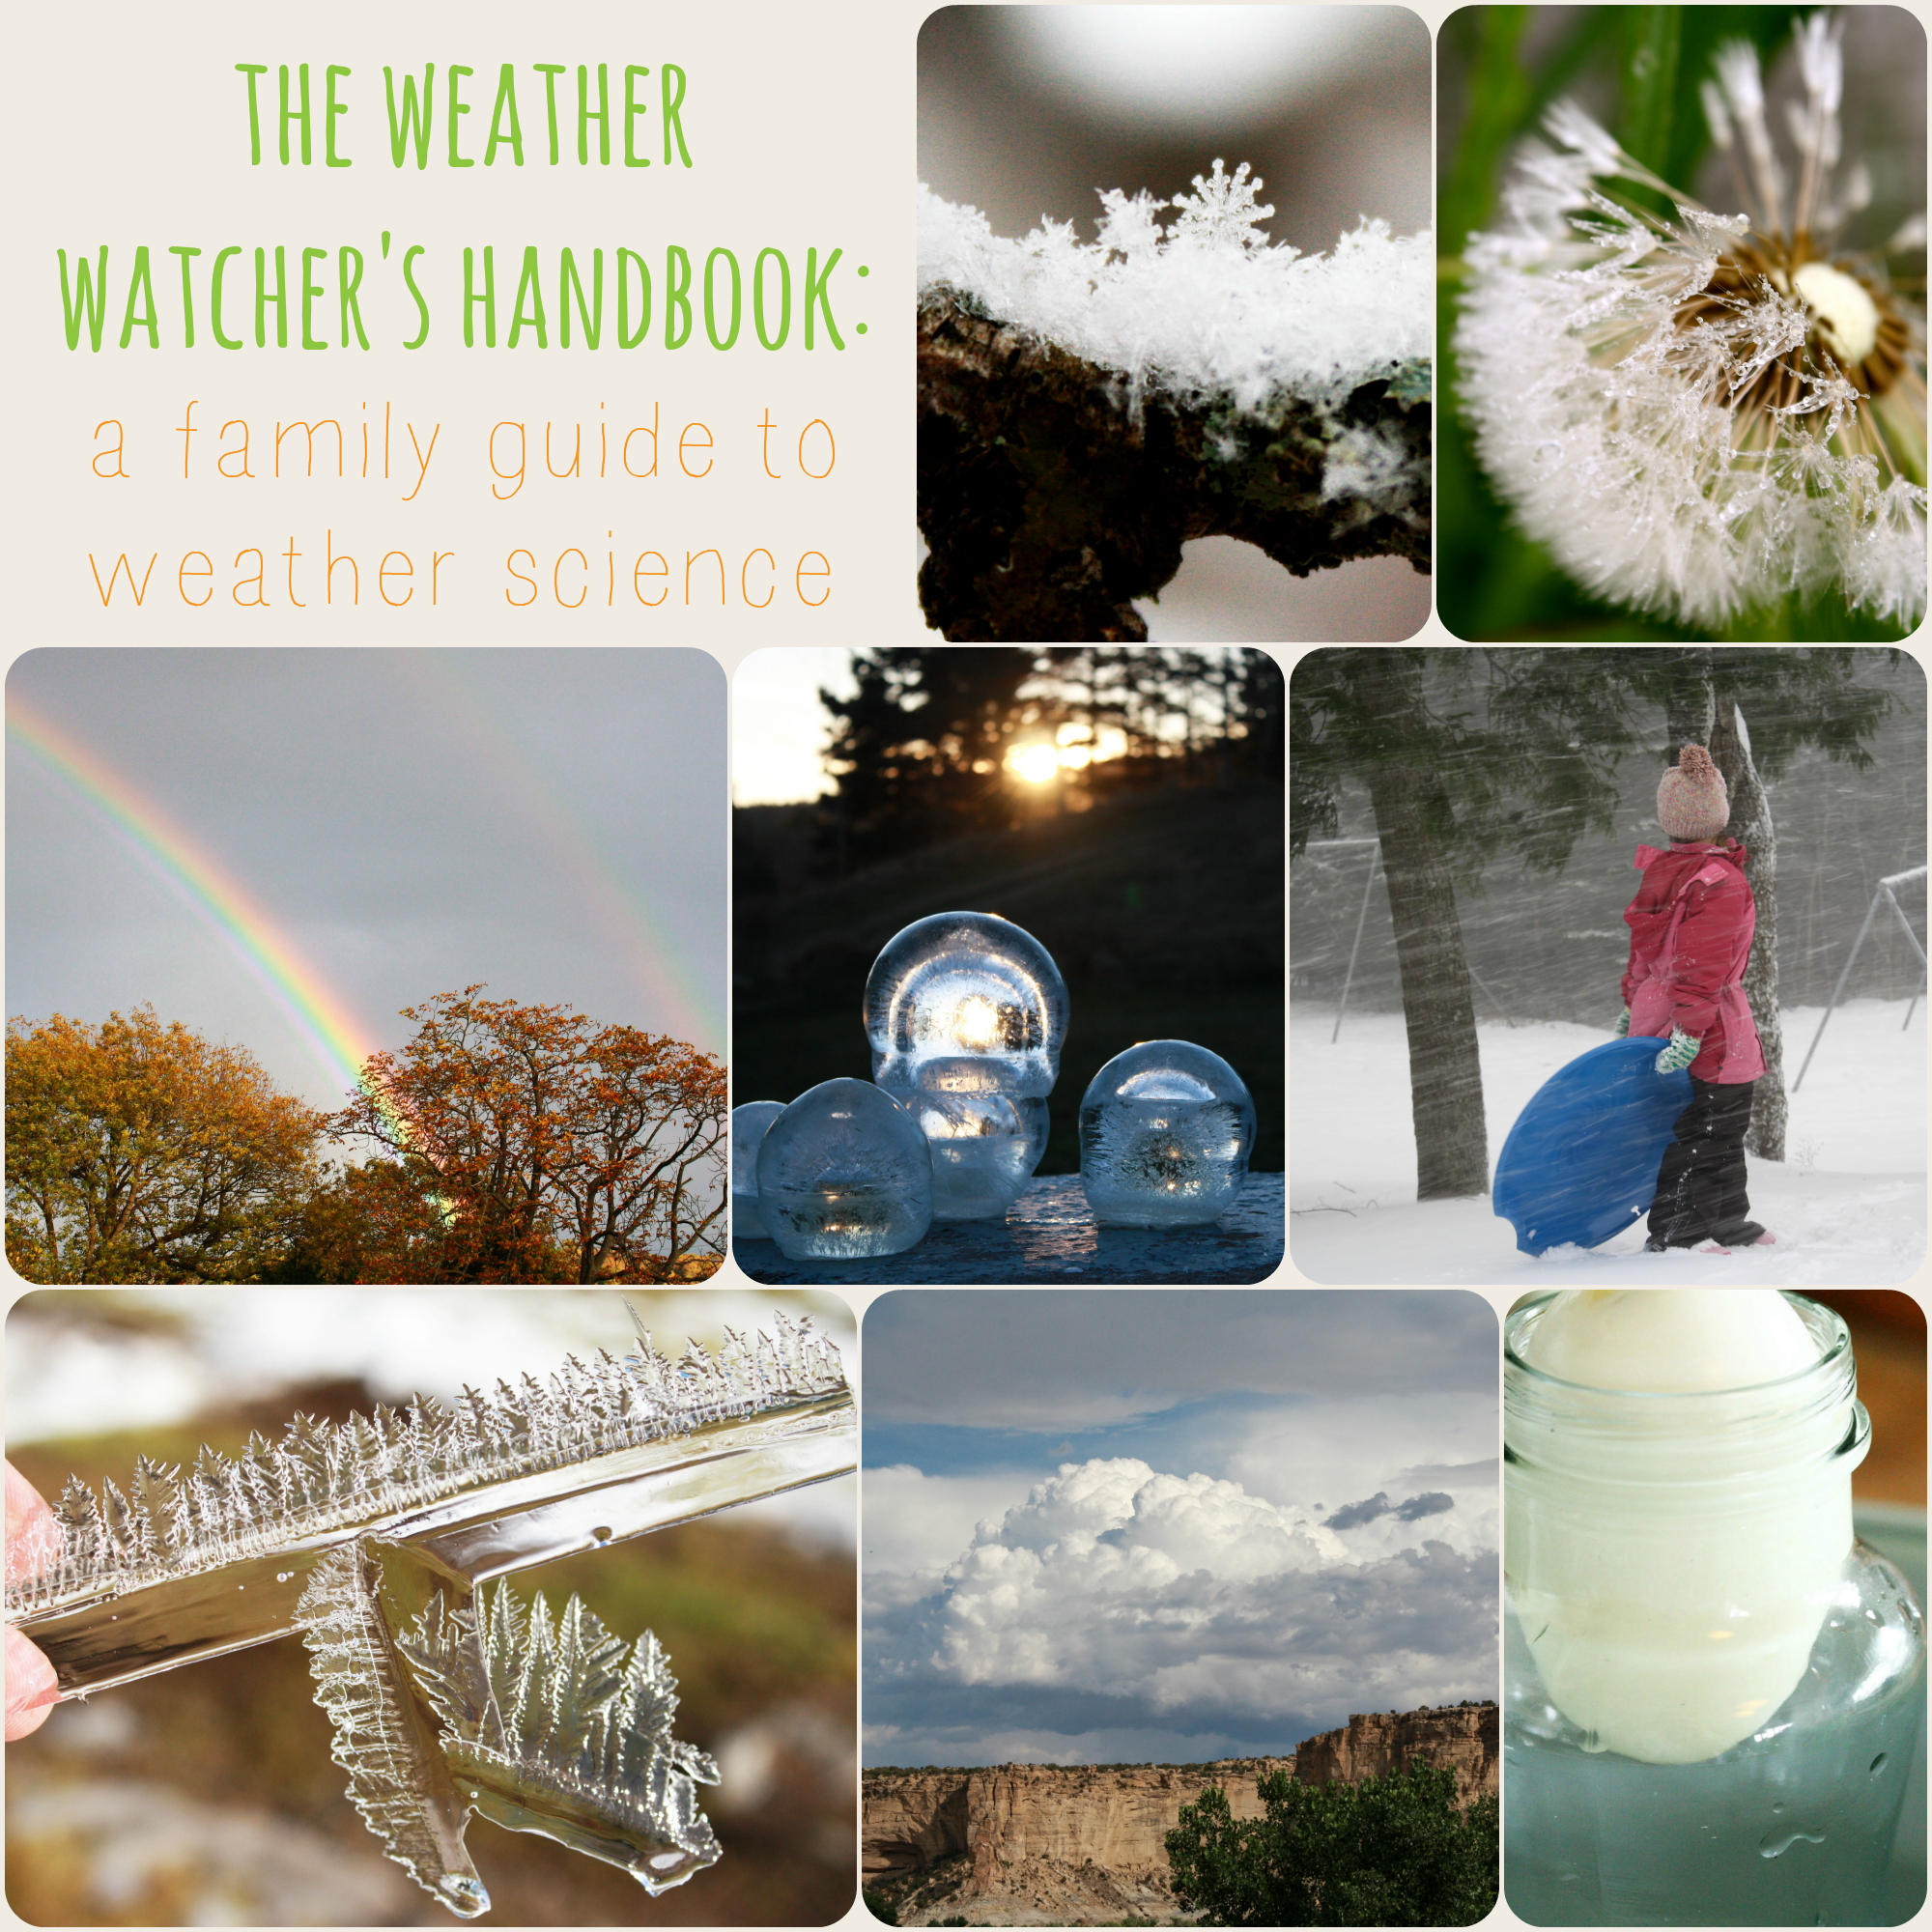 weather-watchers-handbook Image